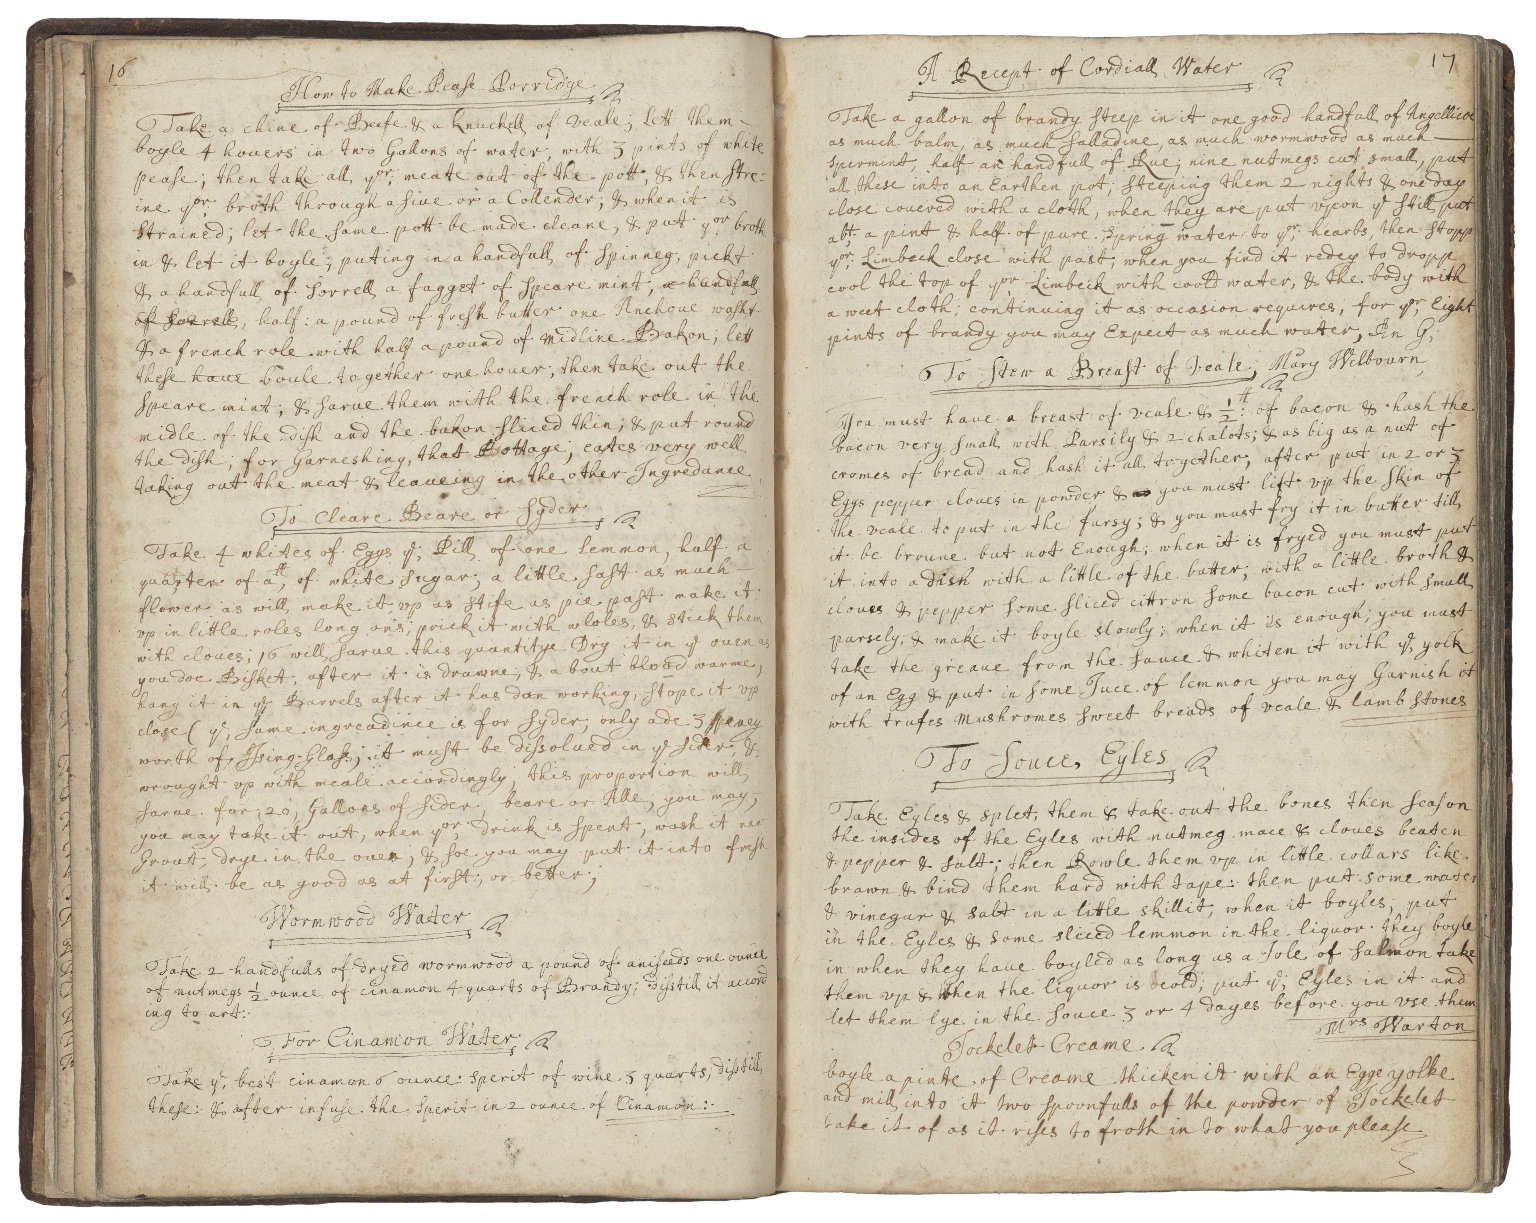 Cookbook of Jane Dawson [manuscript].